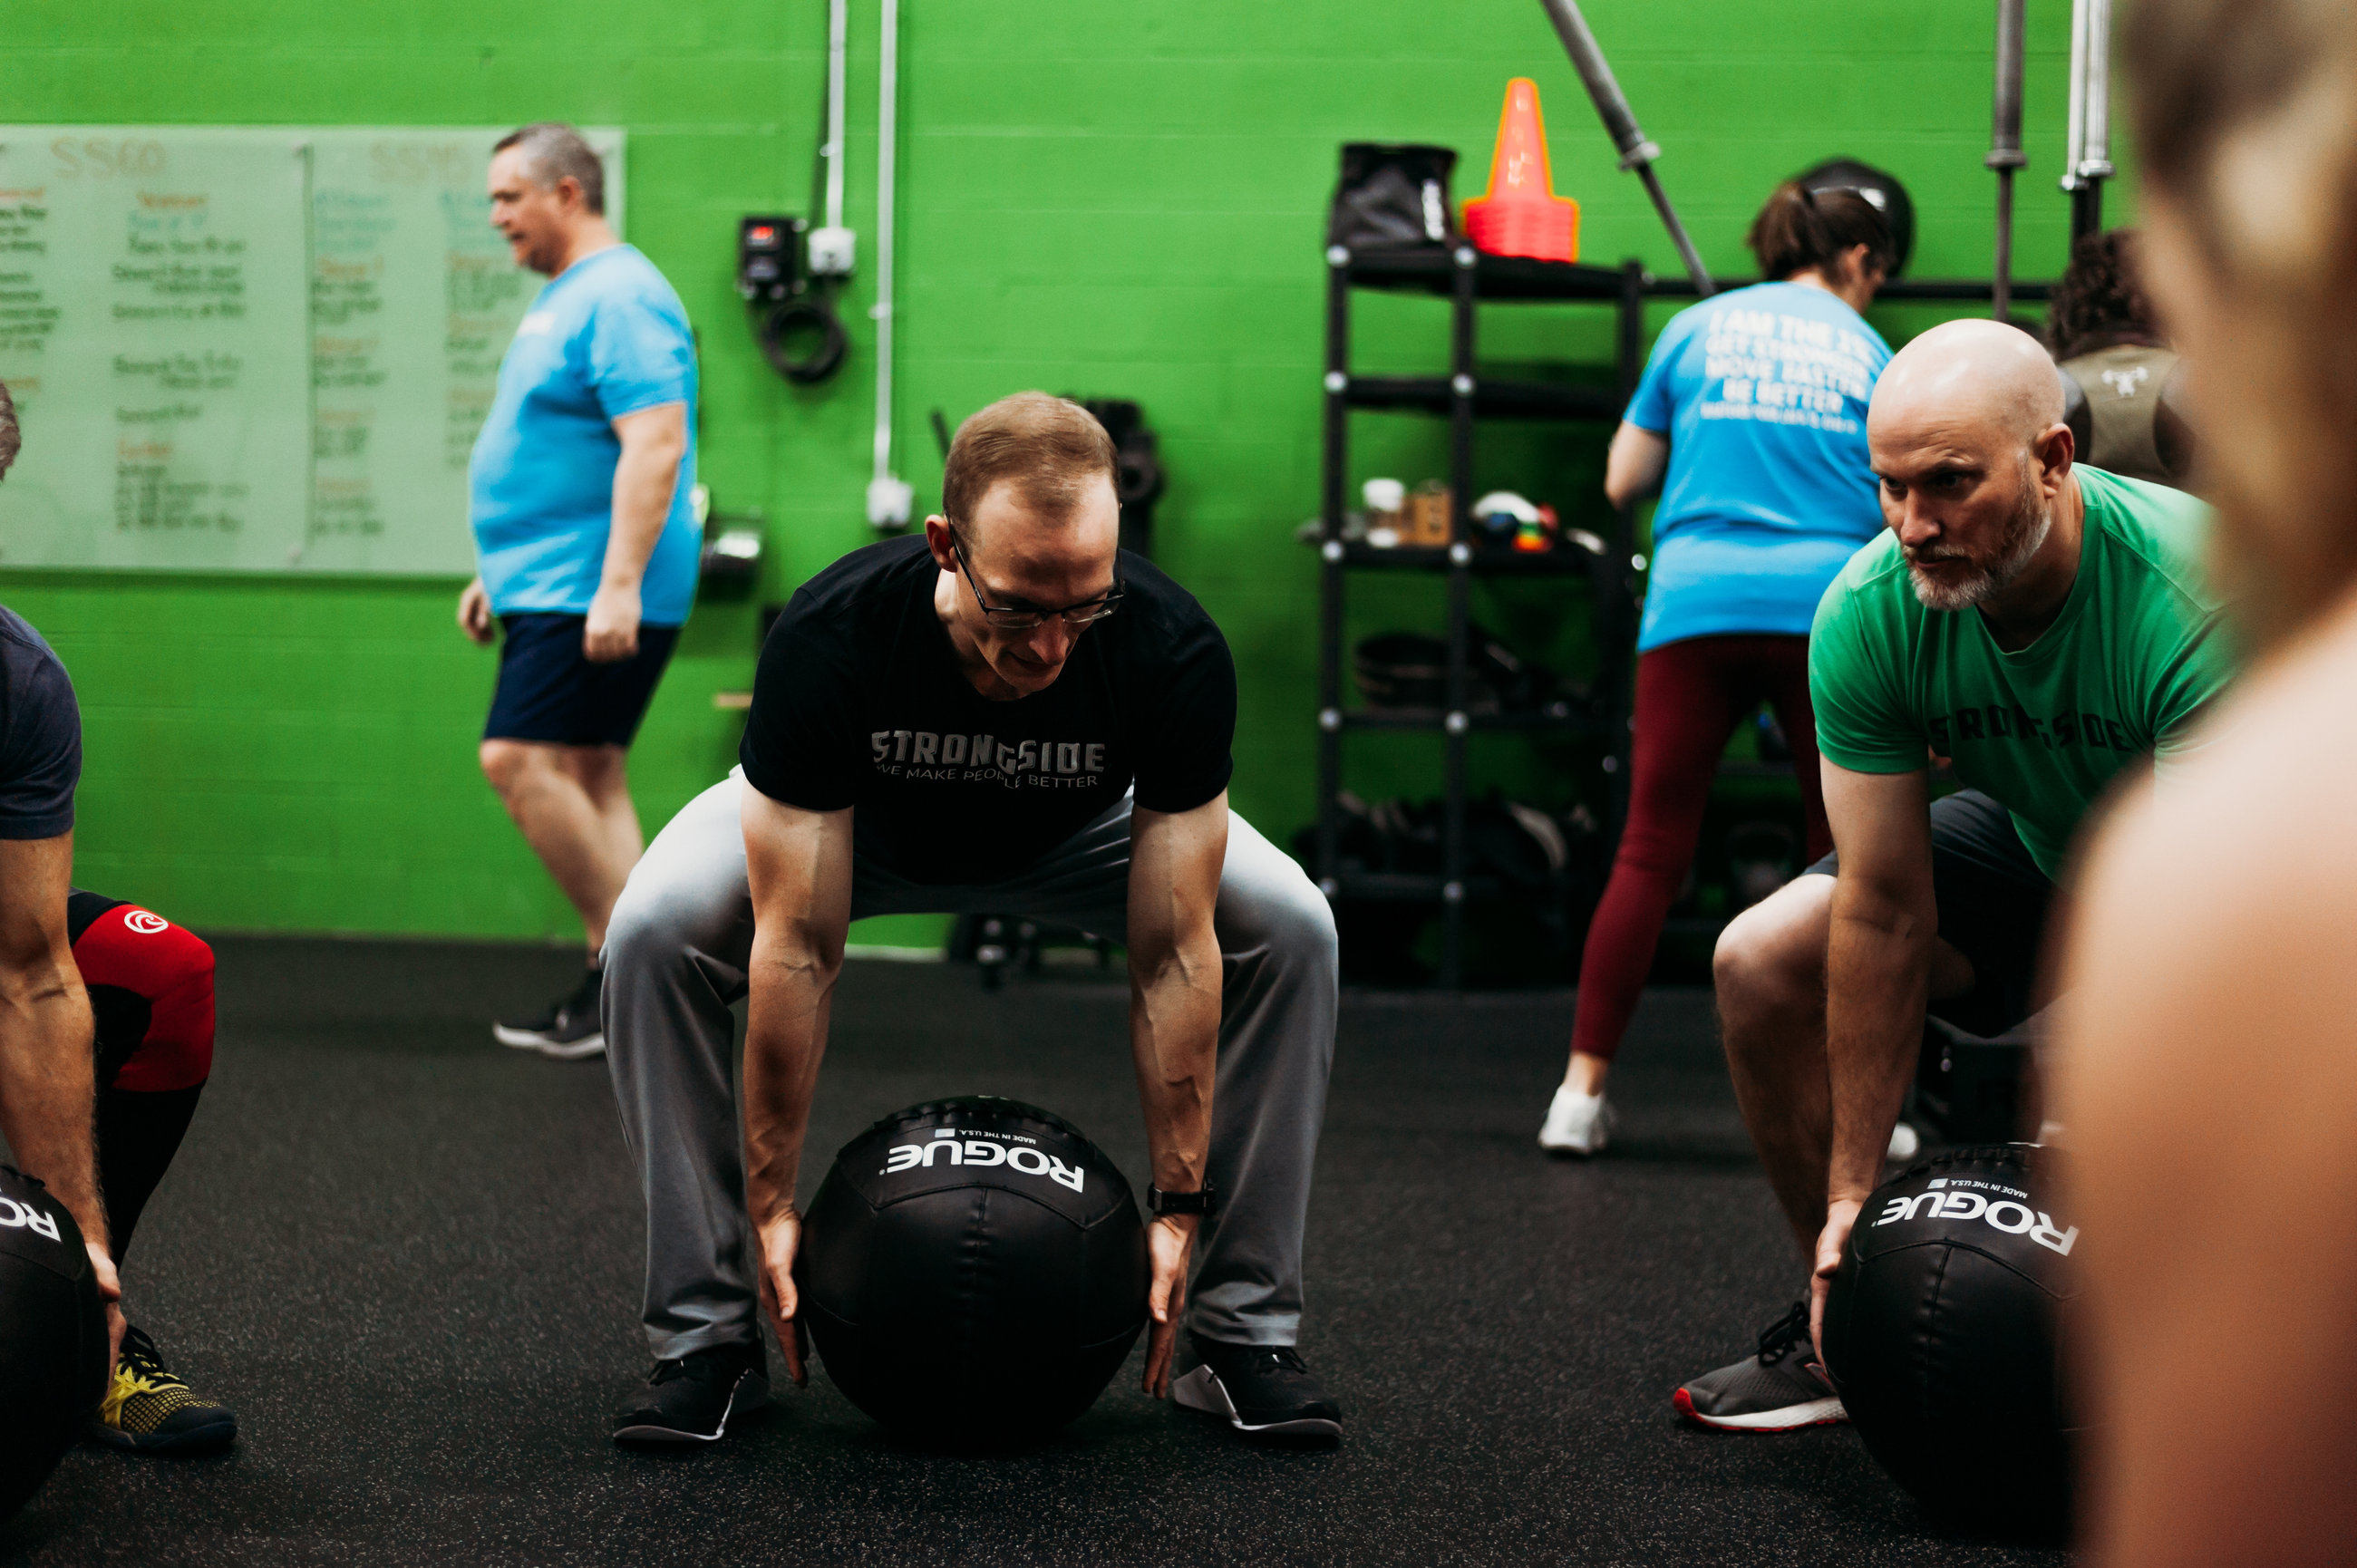 STRONOGSIDE BARBELL: 5.4.20 – 5.10.20